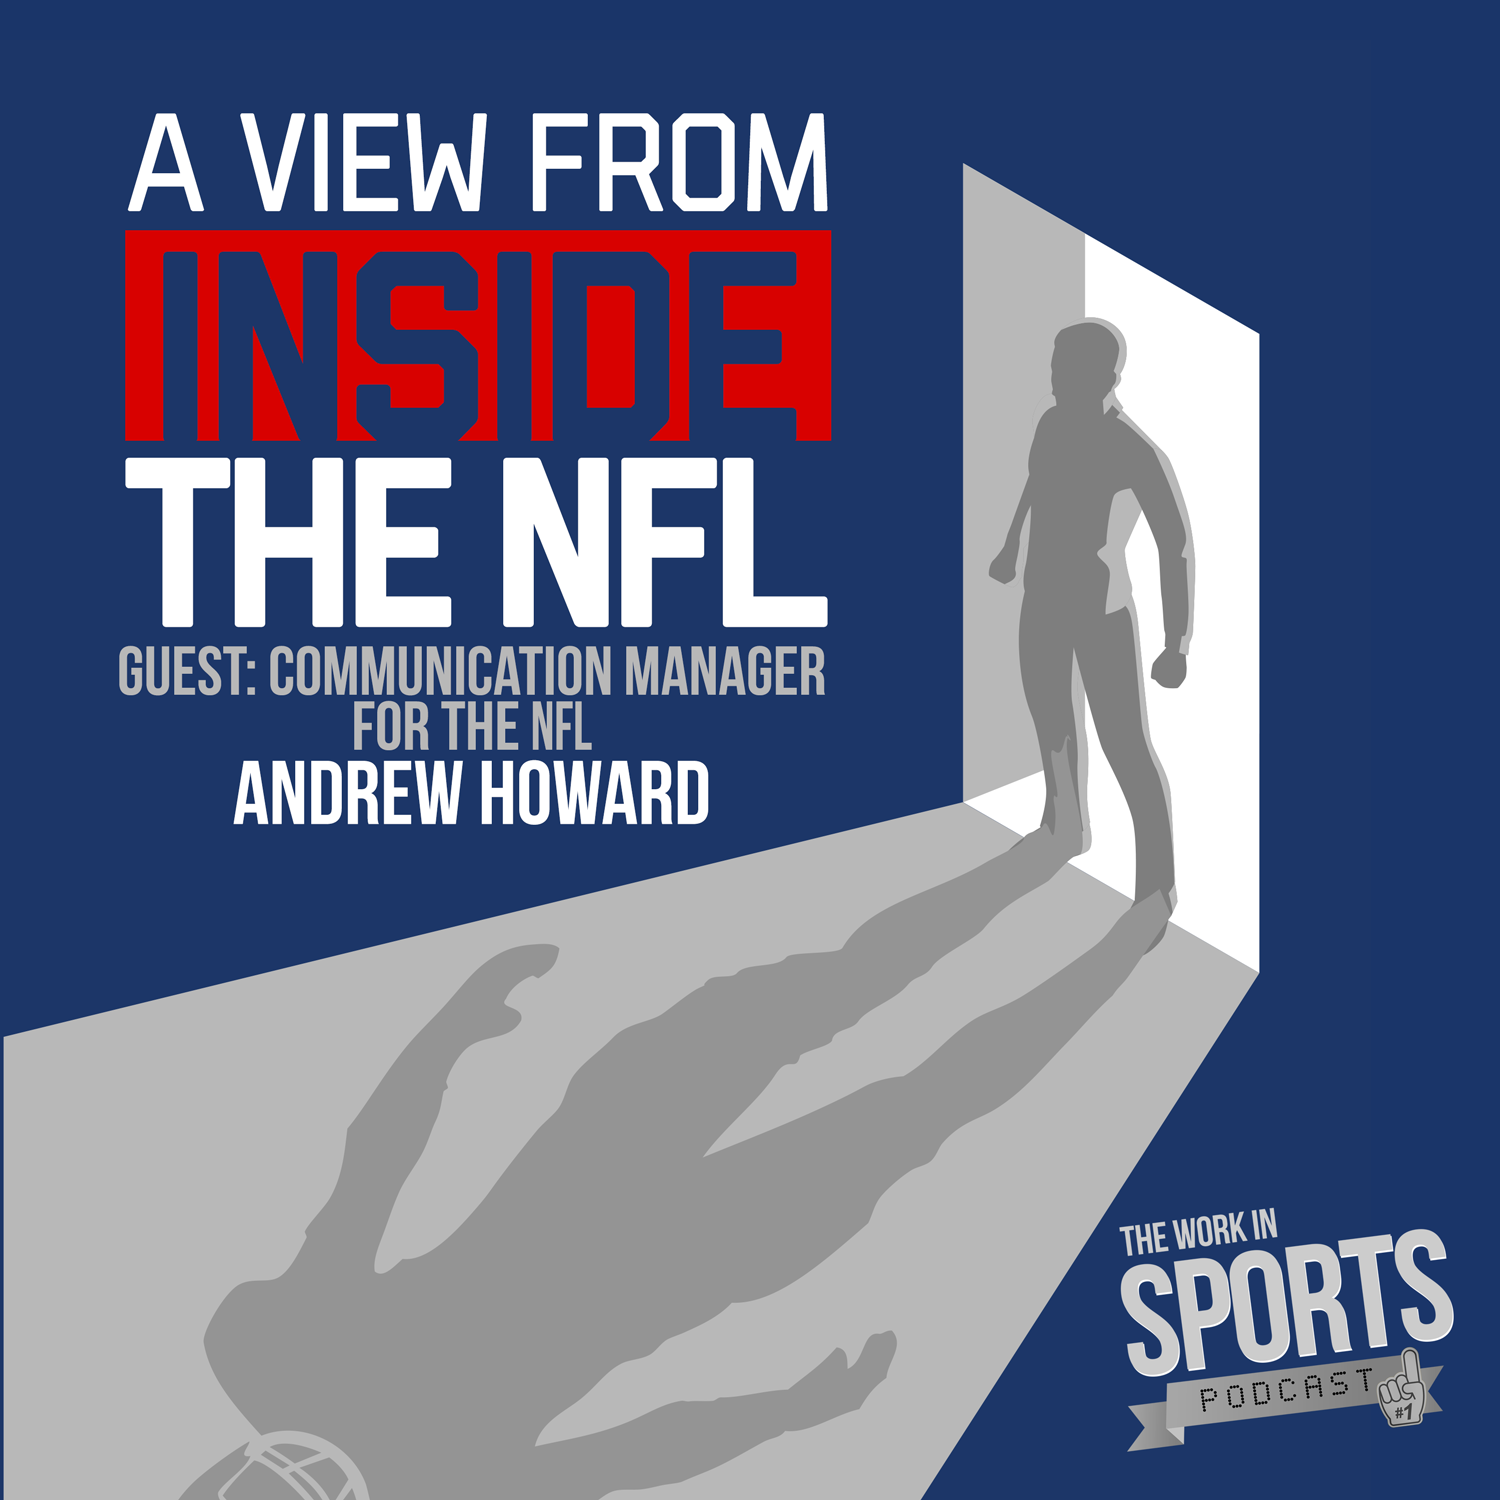 A View From inside the NFL